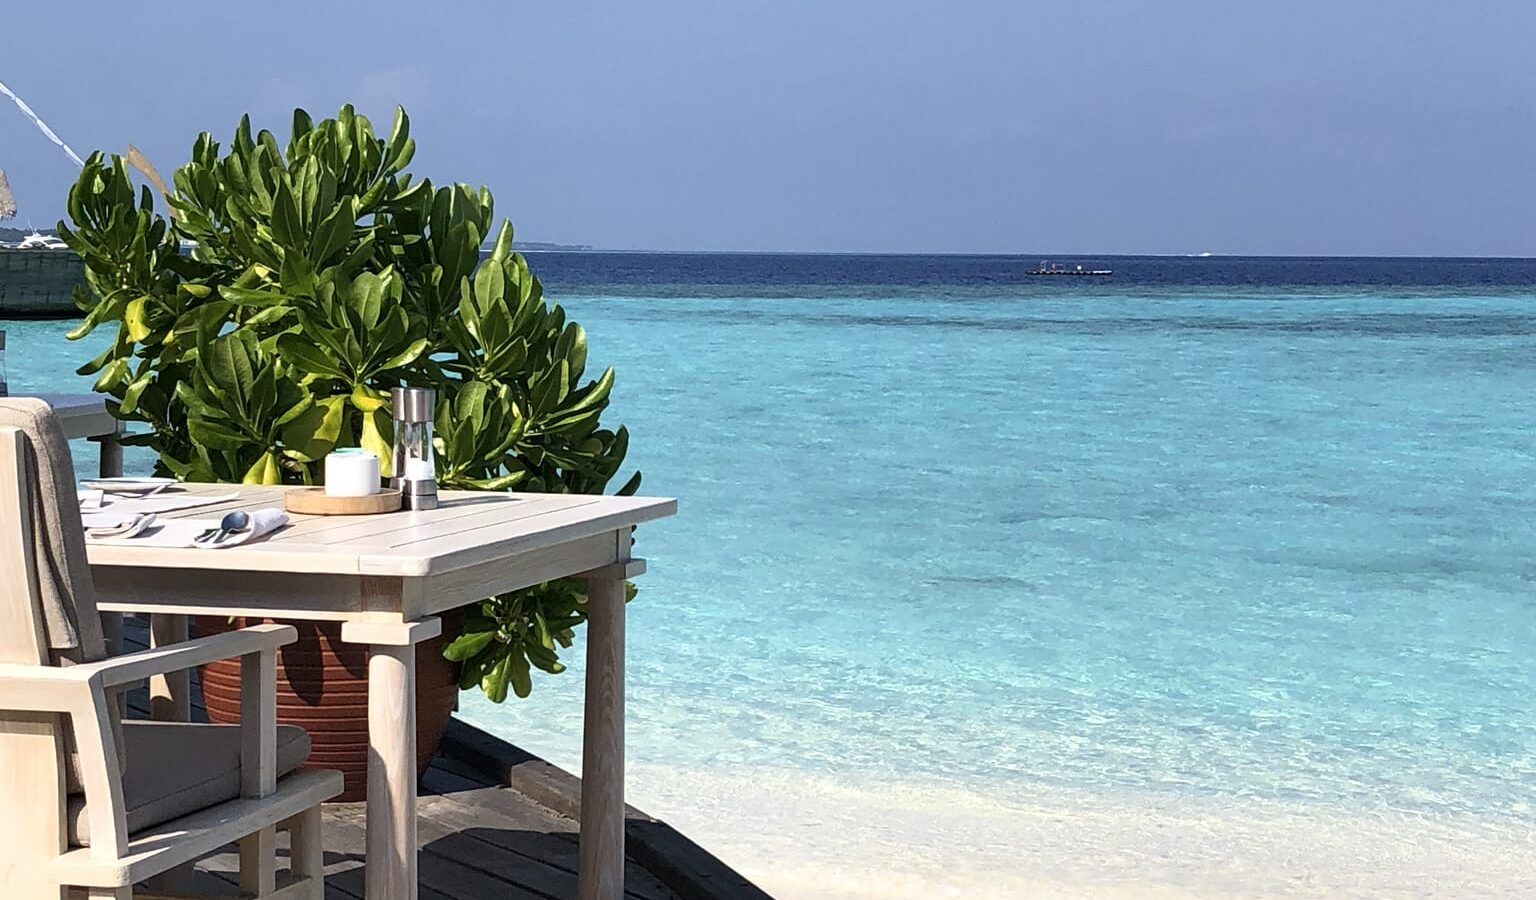 Dining view of the beach and sea at a Maldives resort